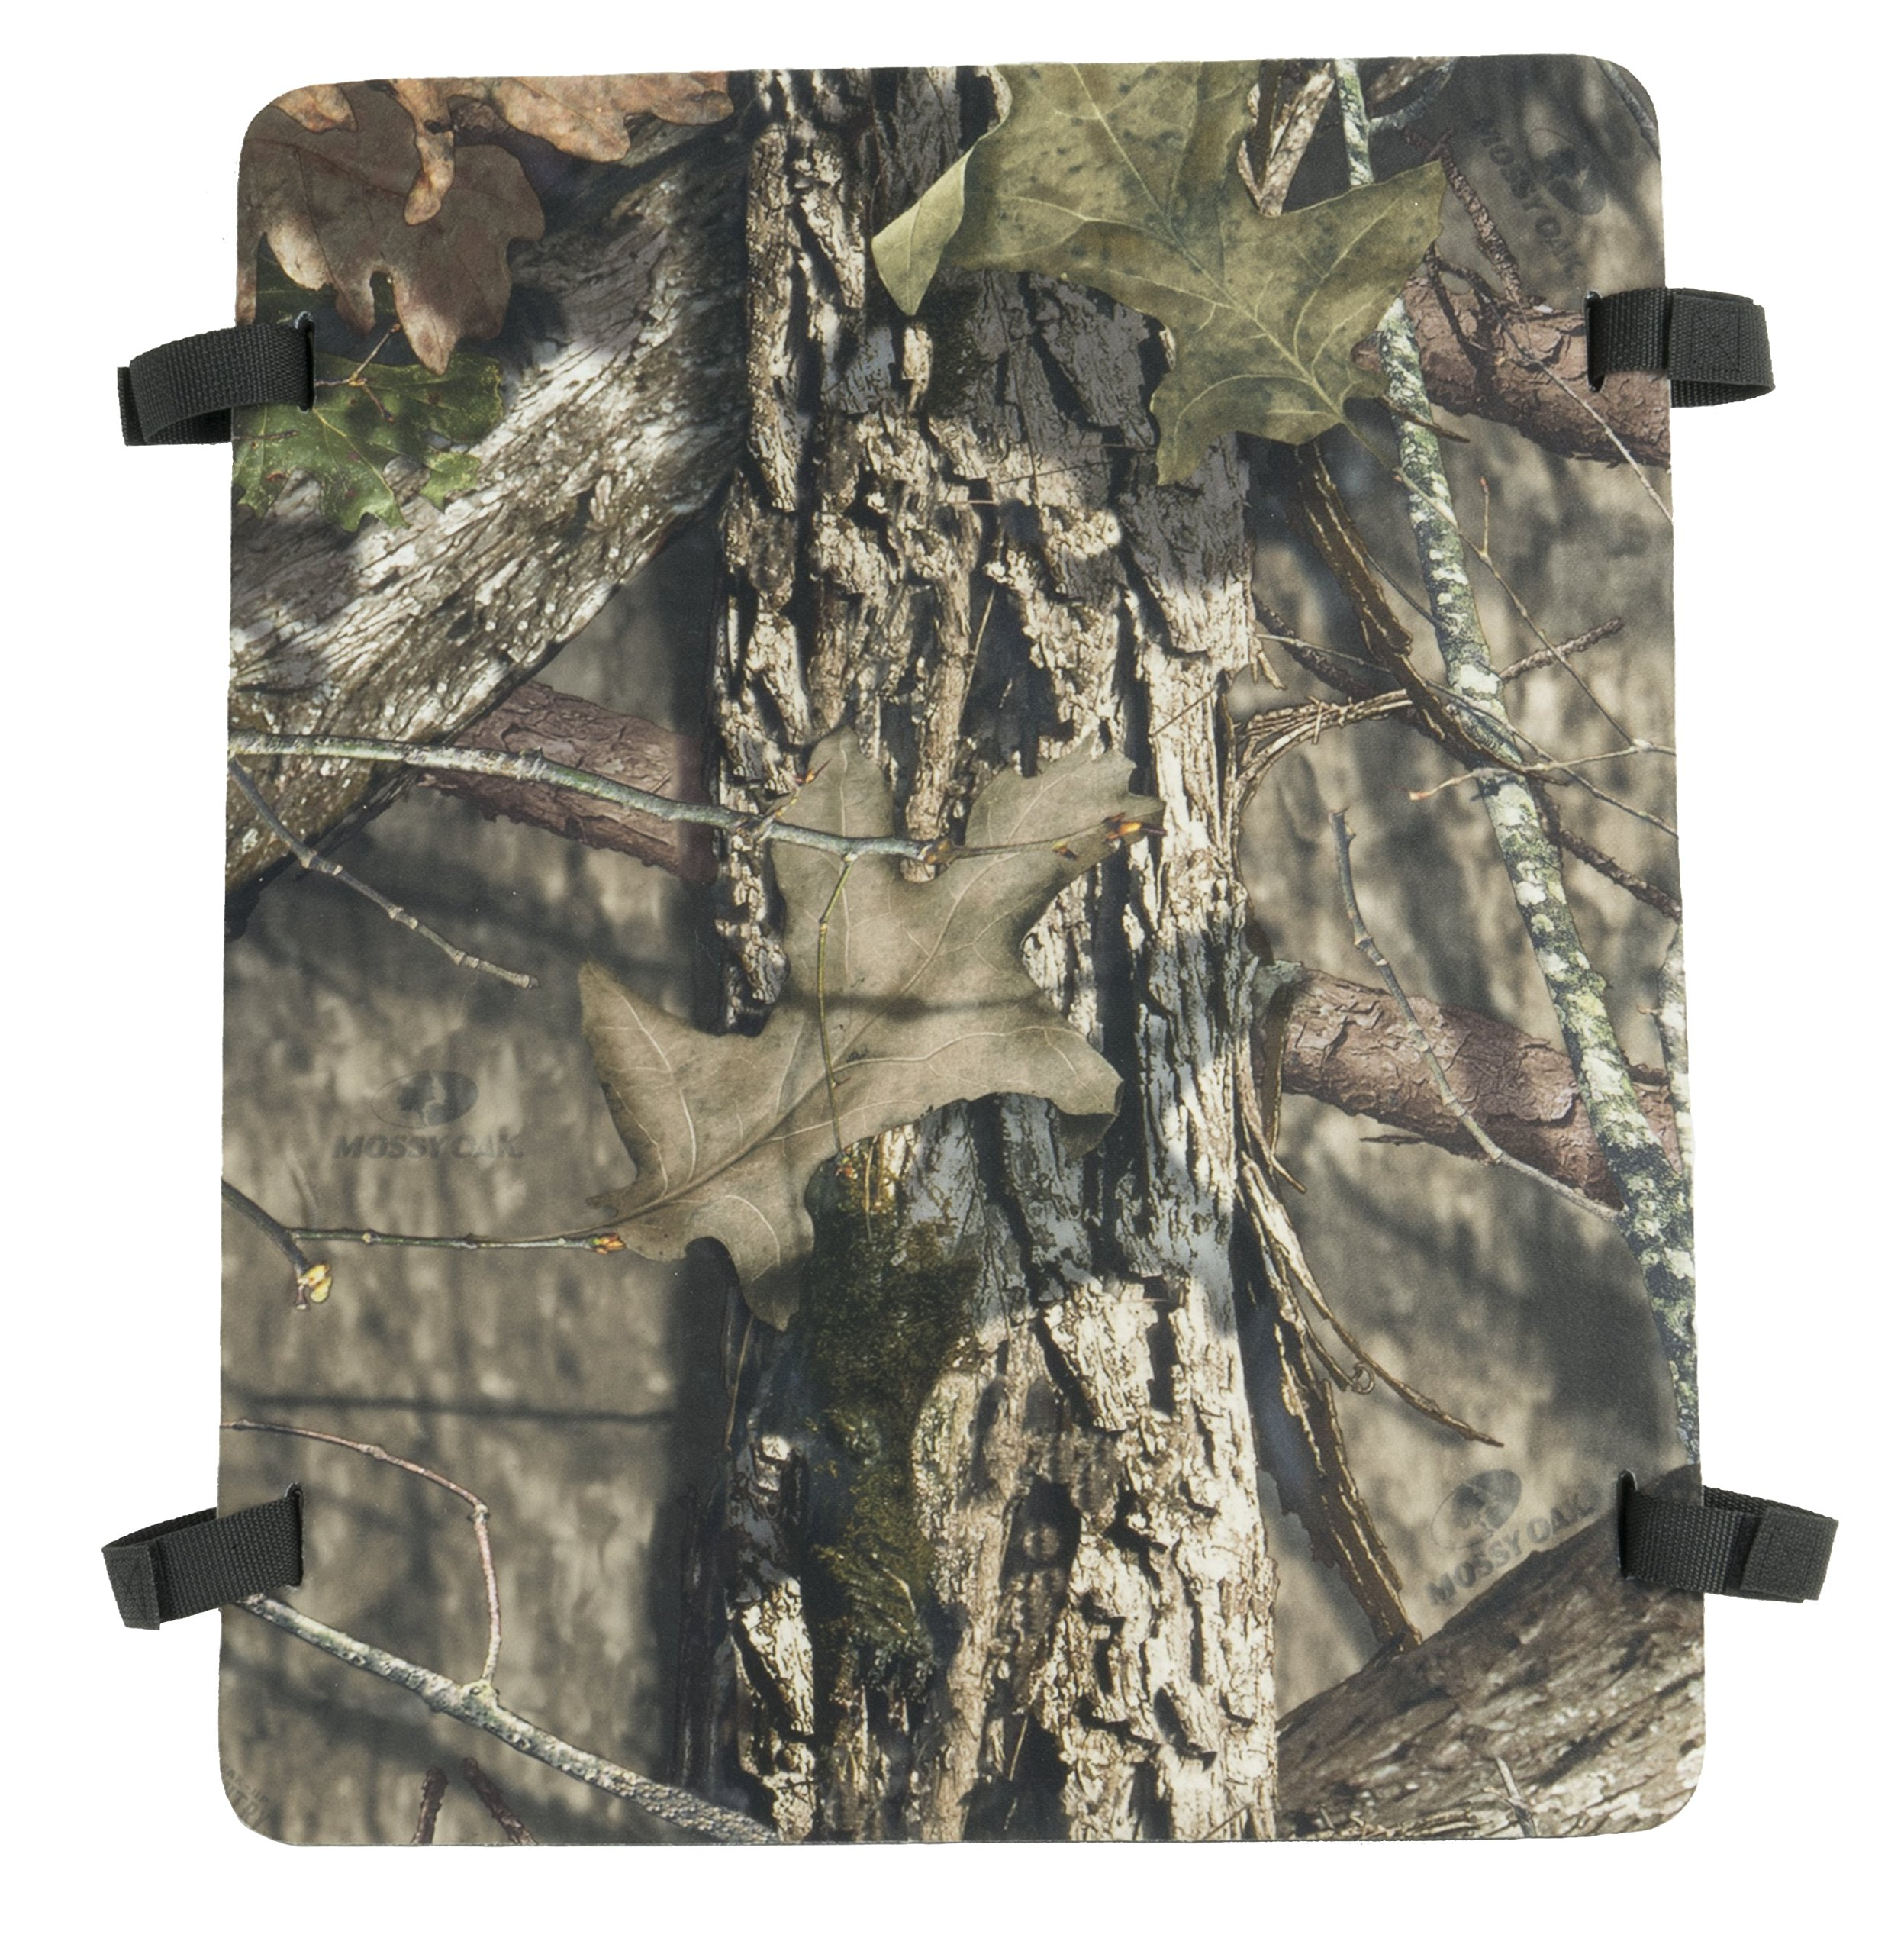 Northeast Products Therm-A-SEAT Therm-a-Mat Tree Stand Insulated Foot Cushion, Mossy Oak Infinity, Large by Northeast Products